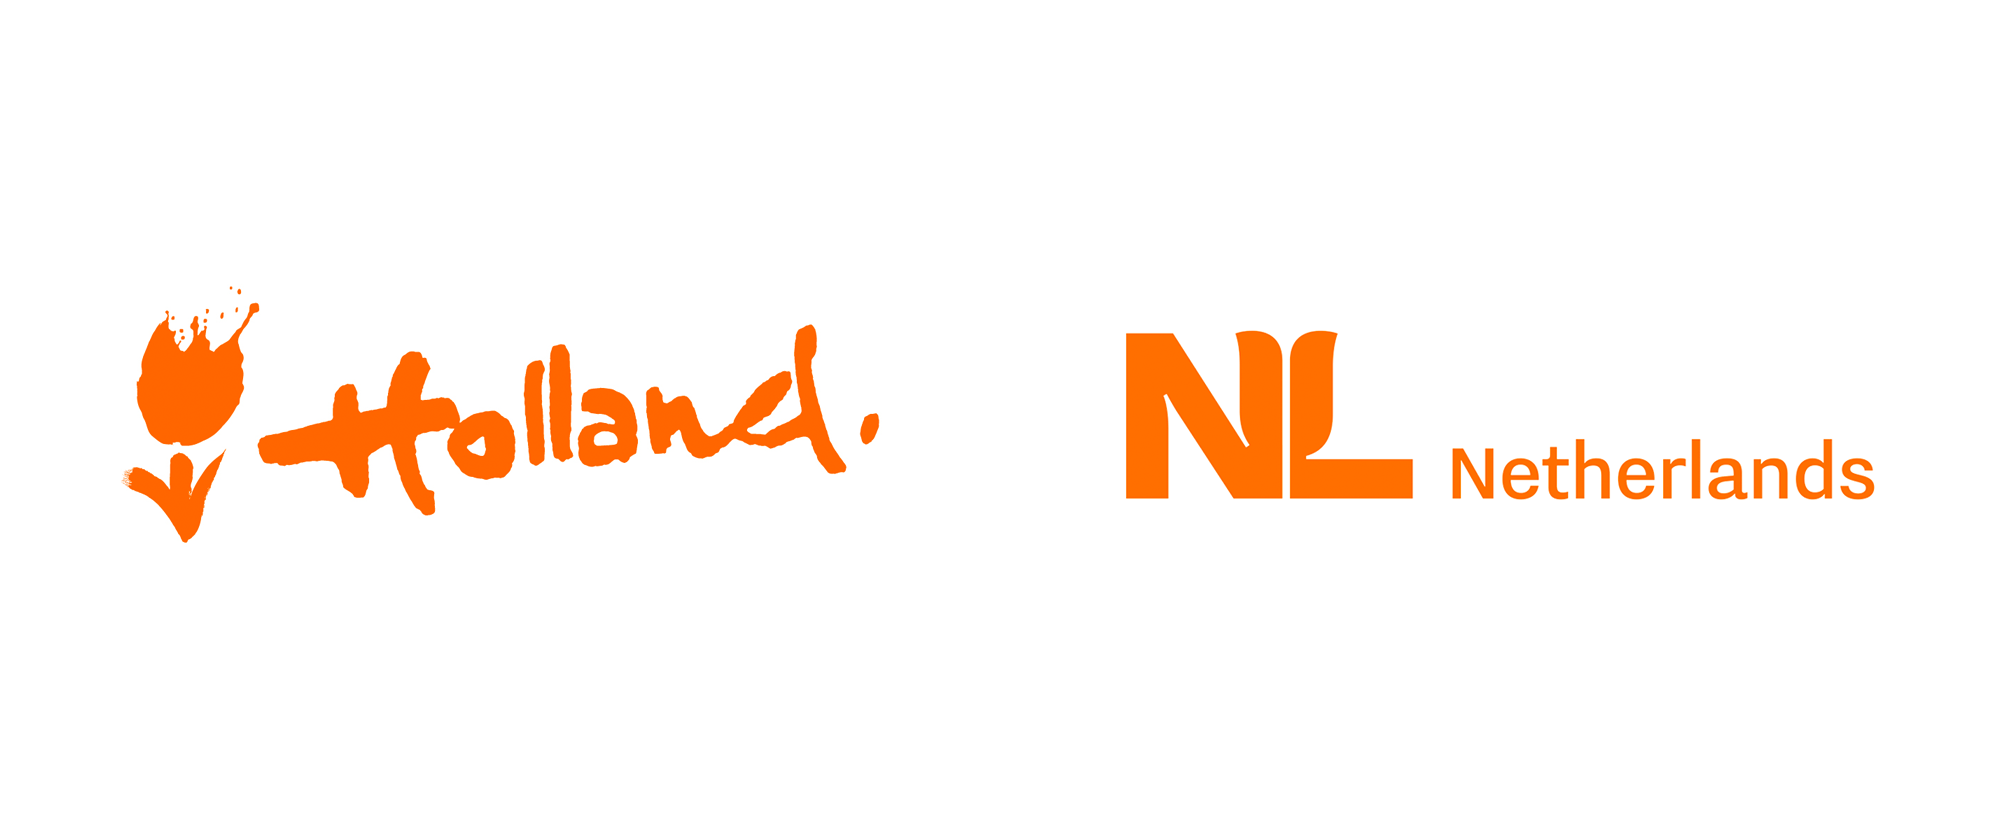 New Logo for Netherlands by Studio Dumbar